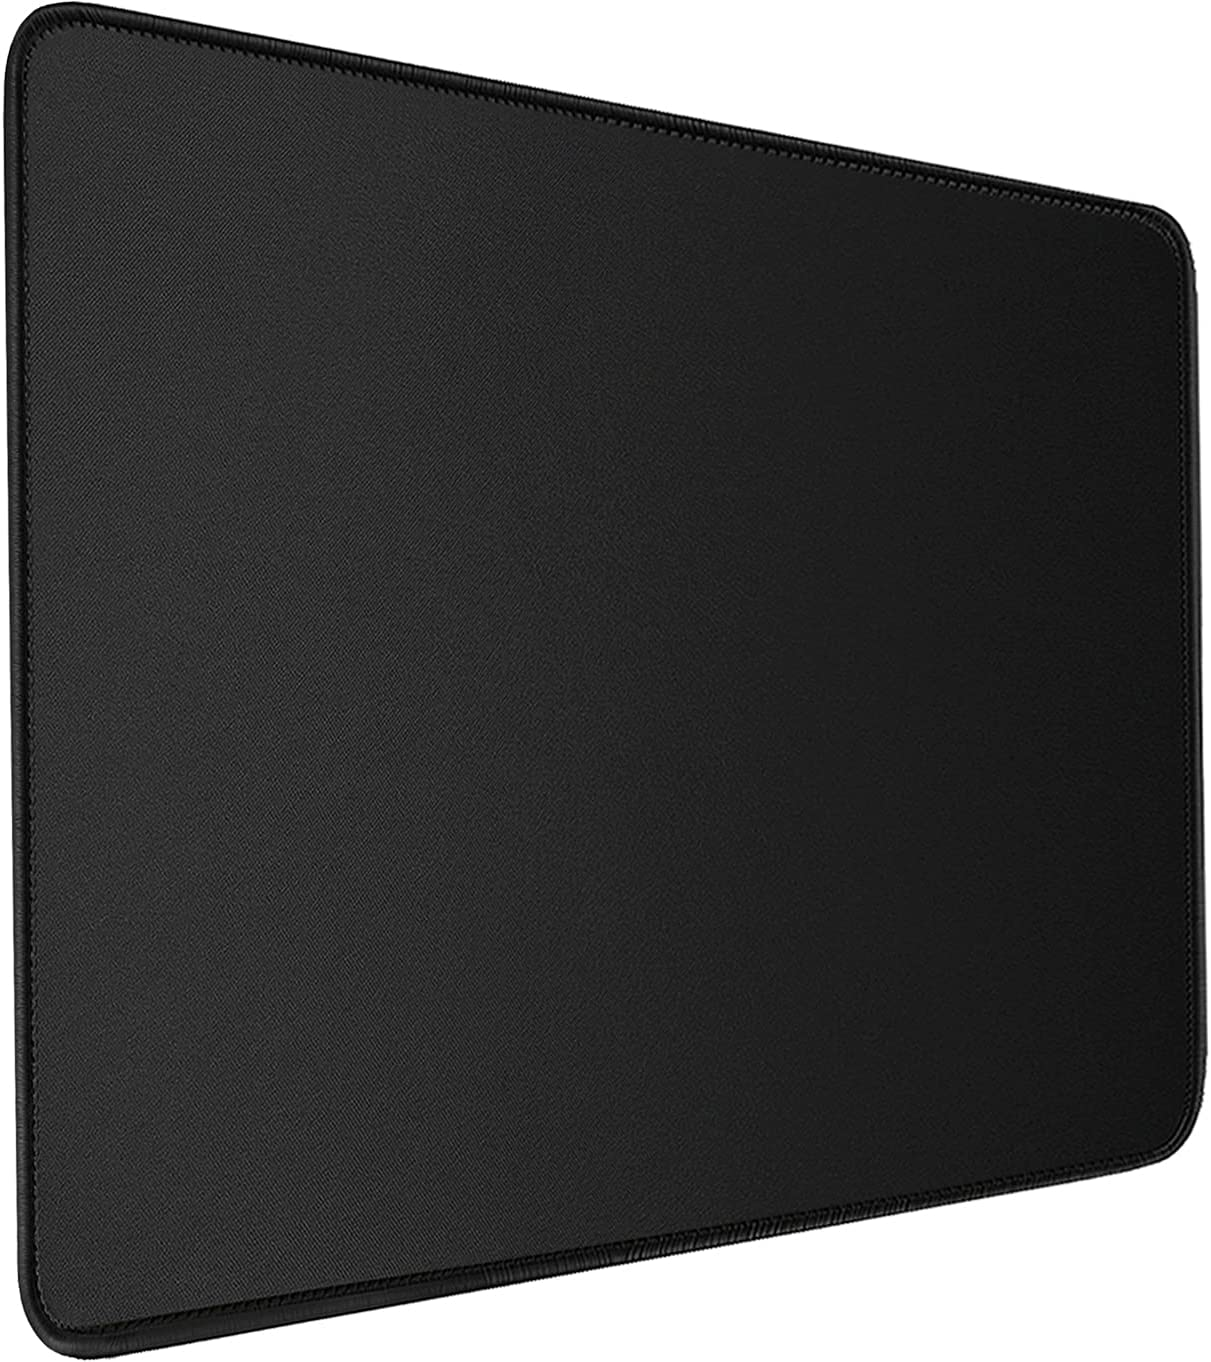 Rapid rise Mouse Pad Gaming Mat 11.8x9.9x0.12 Durable Stitch Ultra-Cheap Deals in with